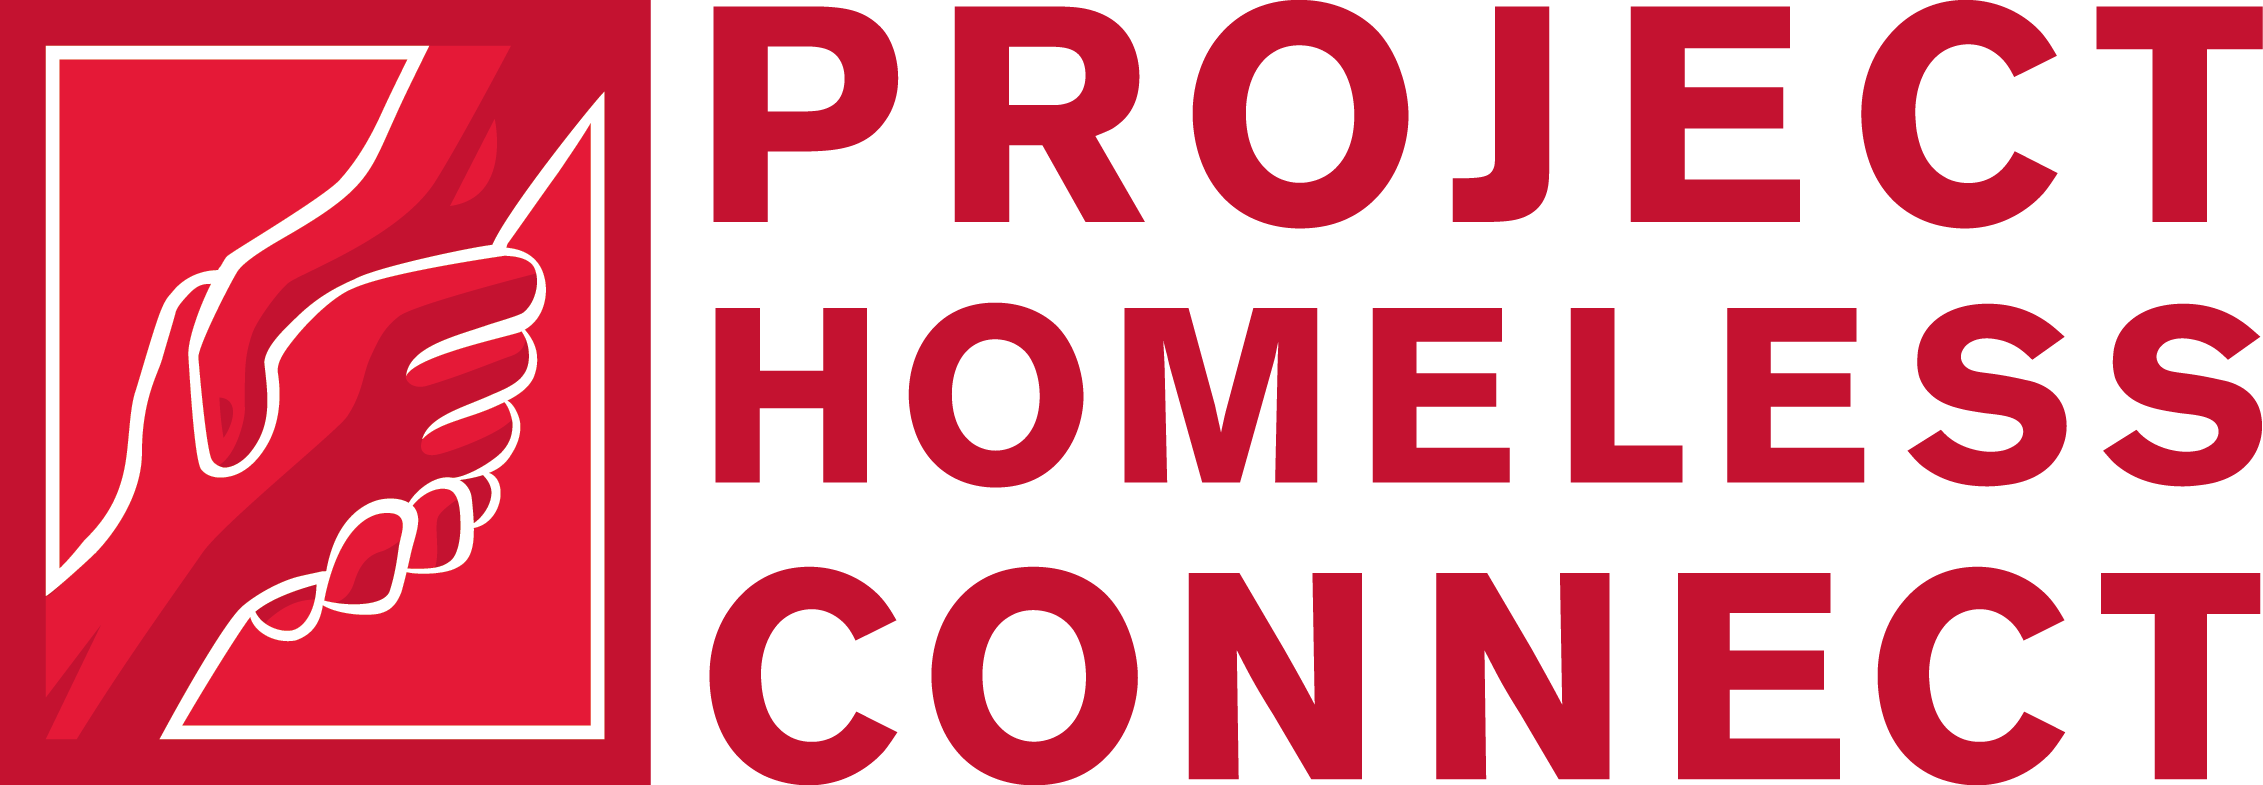 project-homeless-connect-logo.png